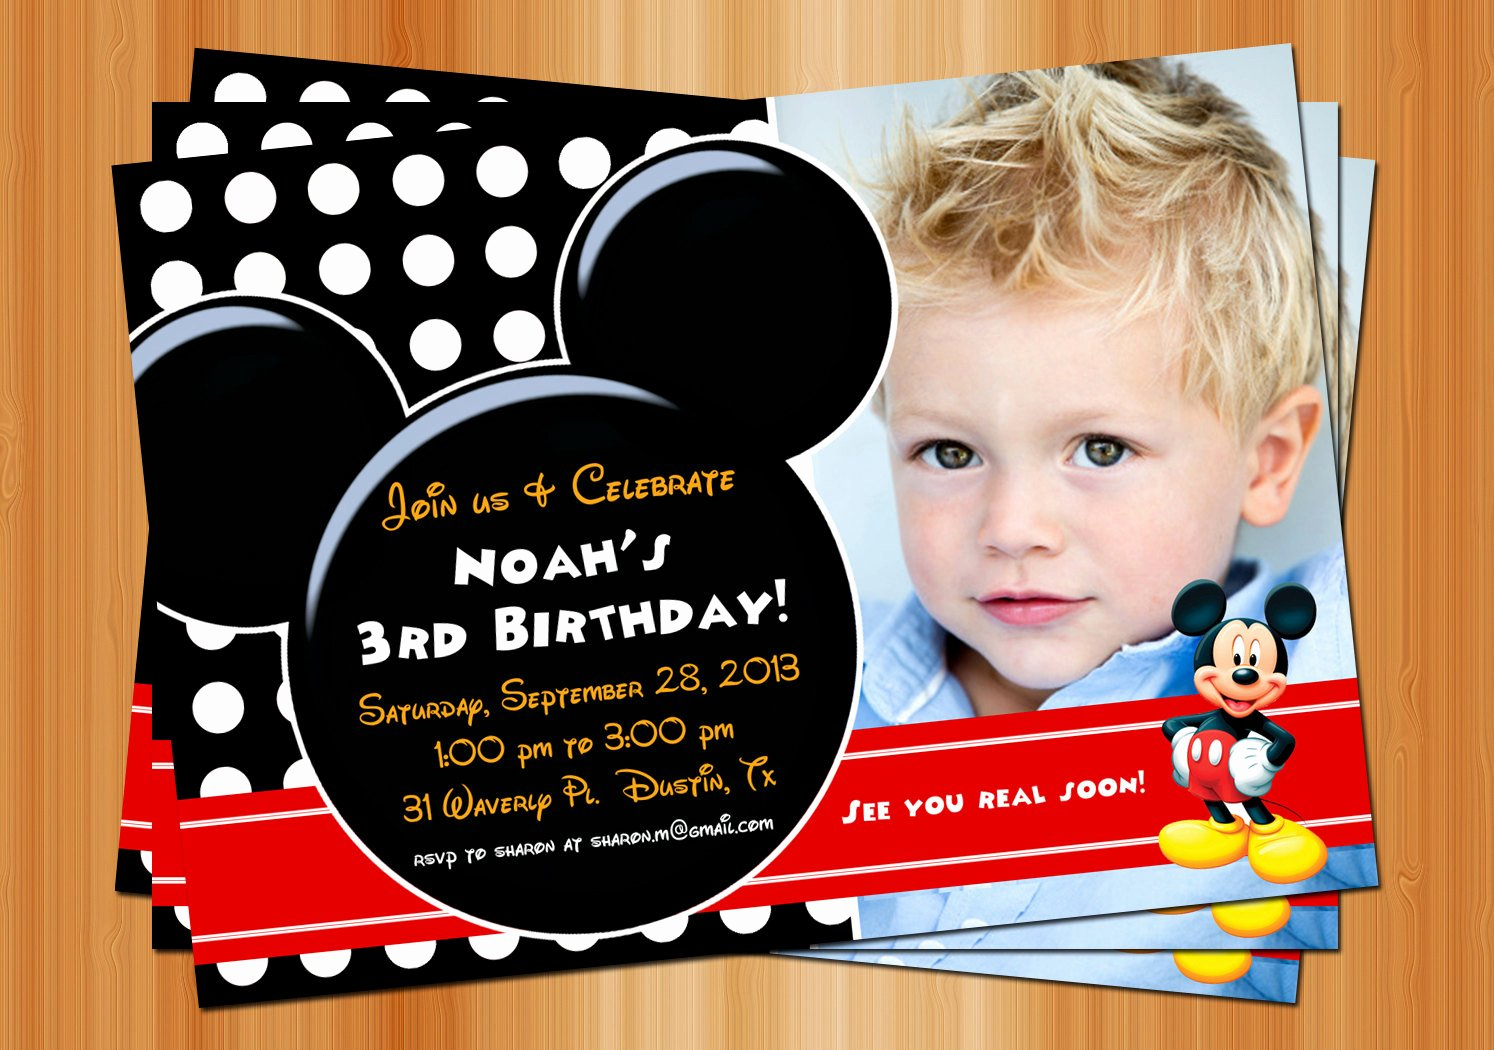 Mickey Mouse Clubhouse Invitation Template Elegant Mickey Mouse Clubhouse Invitations for Special Birthday Party